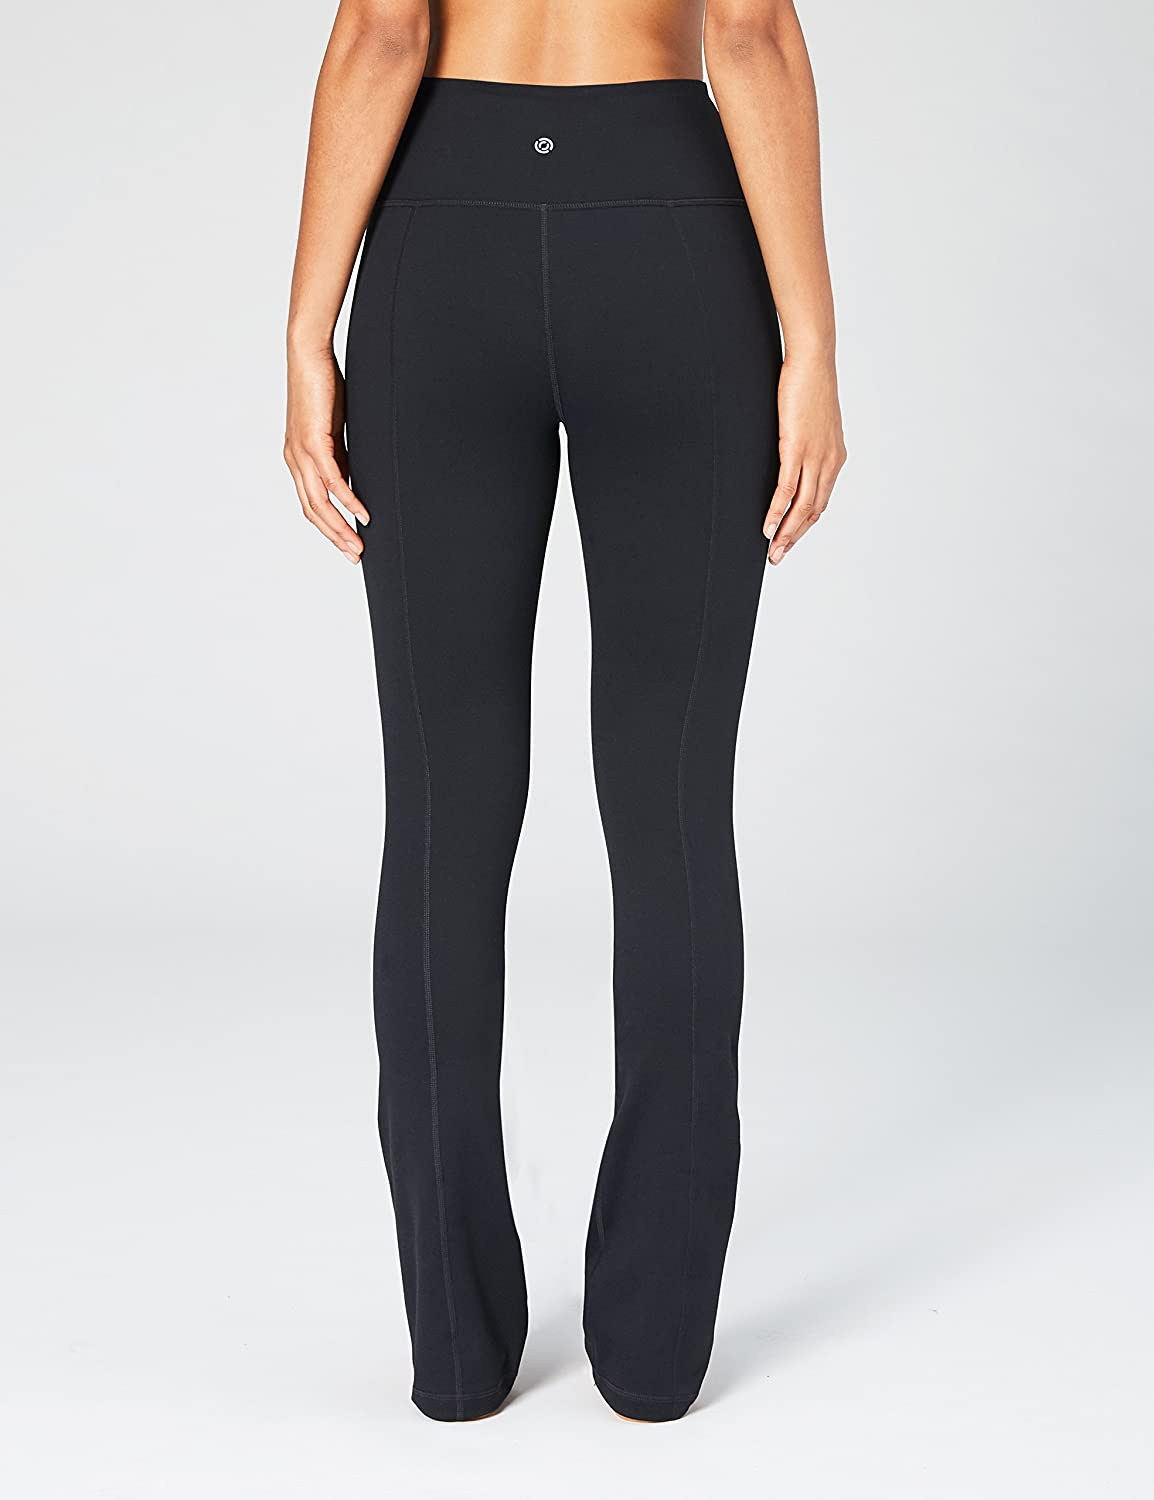 Amazon Brand - Core 10 Women's (XS-3X) 'Build Your Own' Yoga Straight Pant, Inseams Available